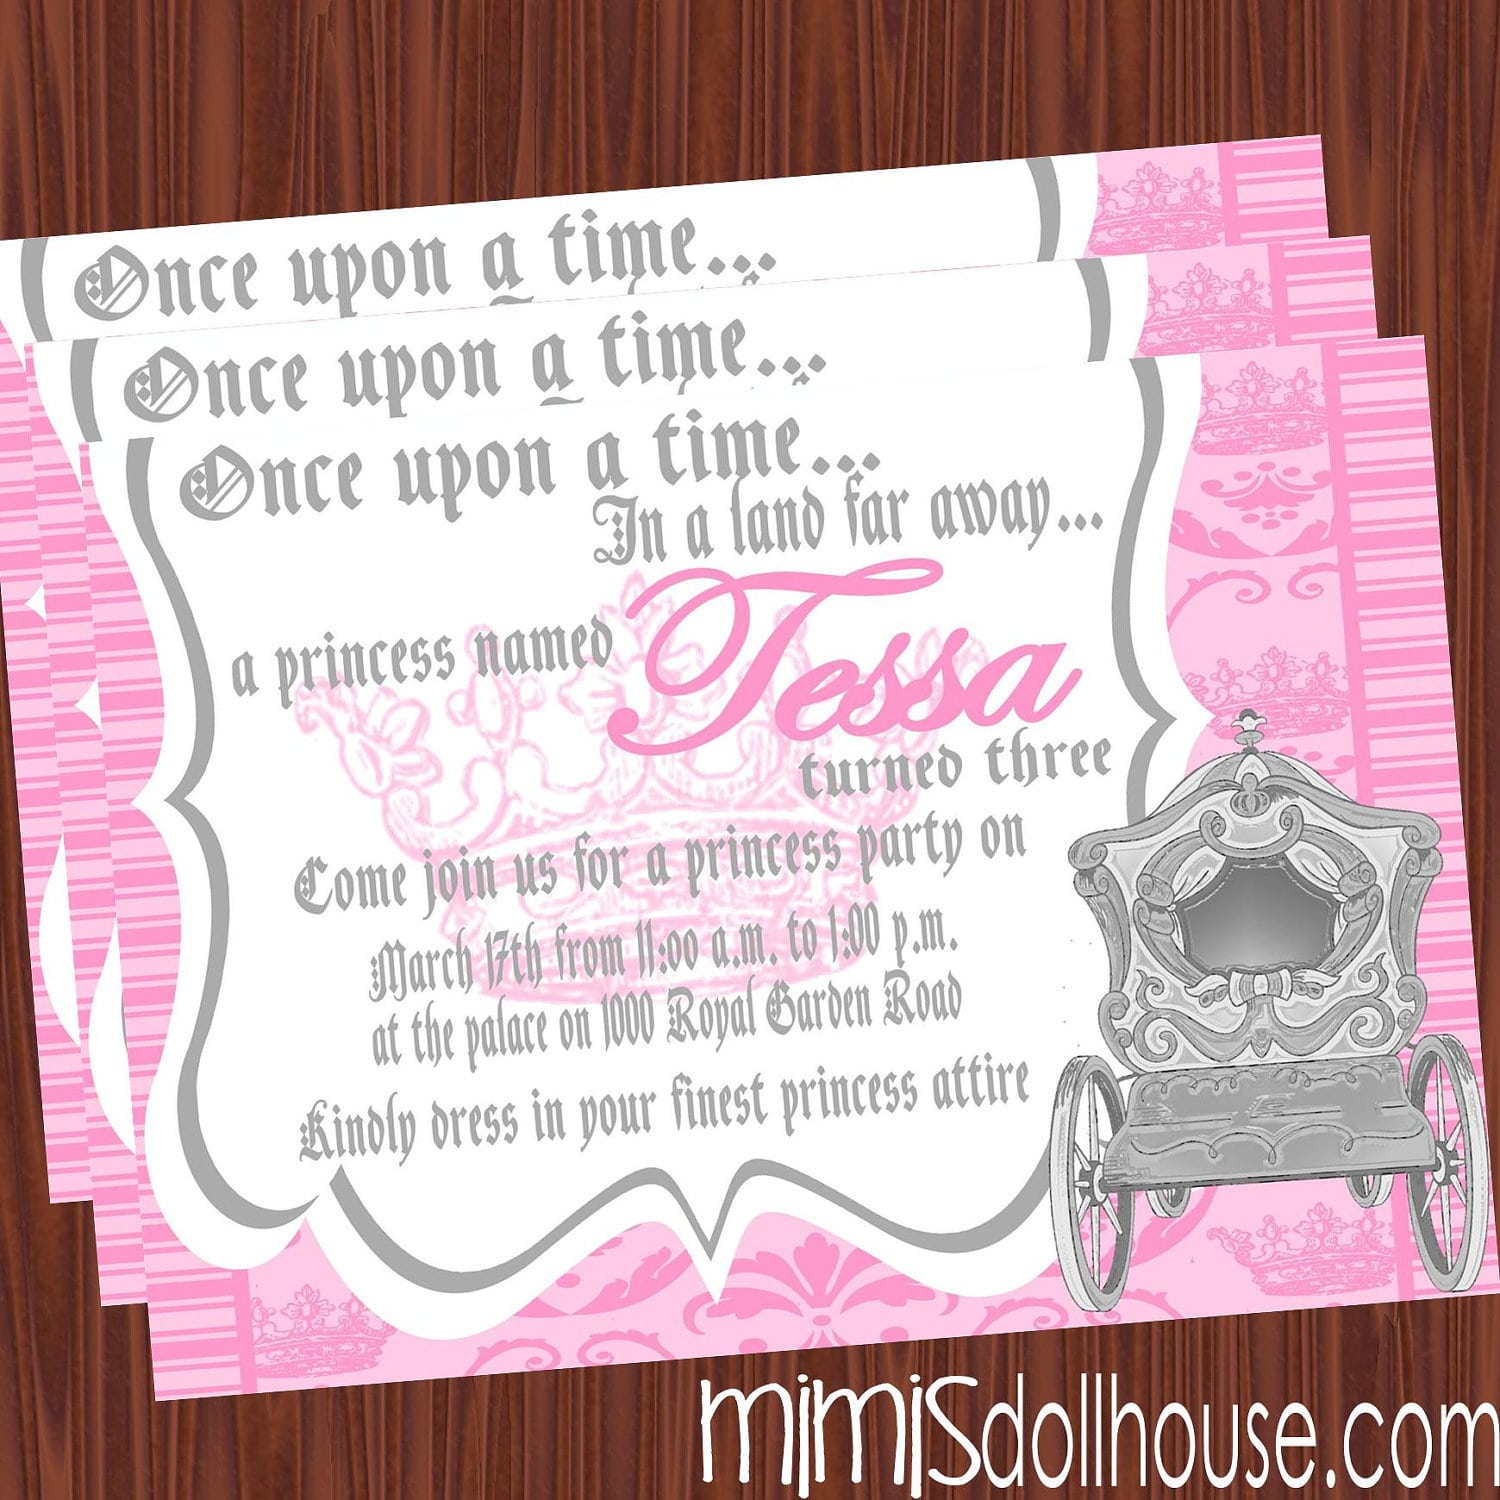 Invitation Wording For Princess Party